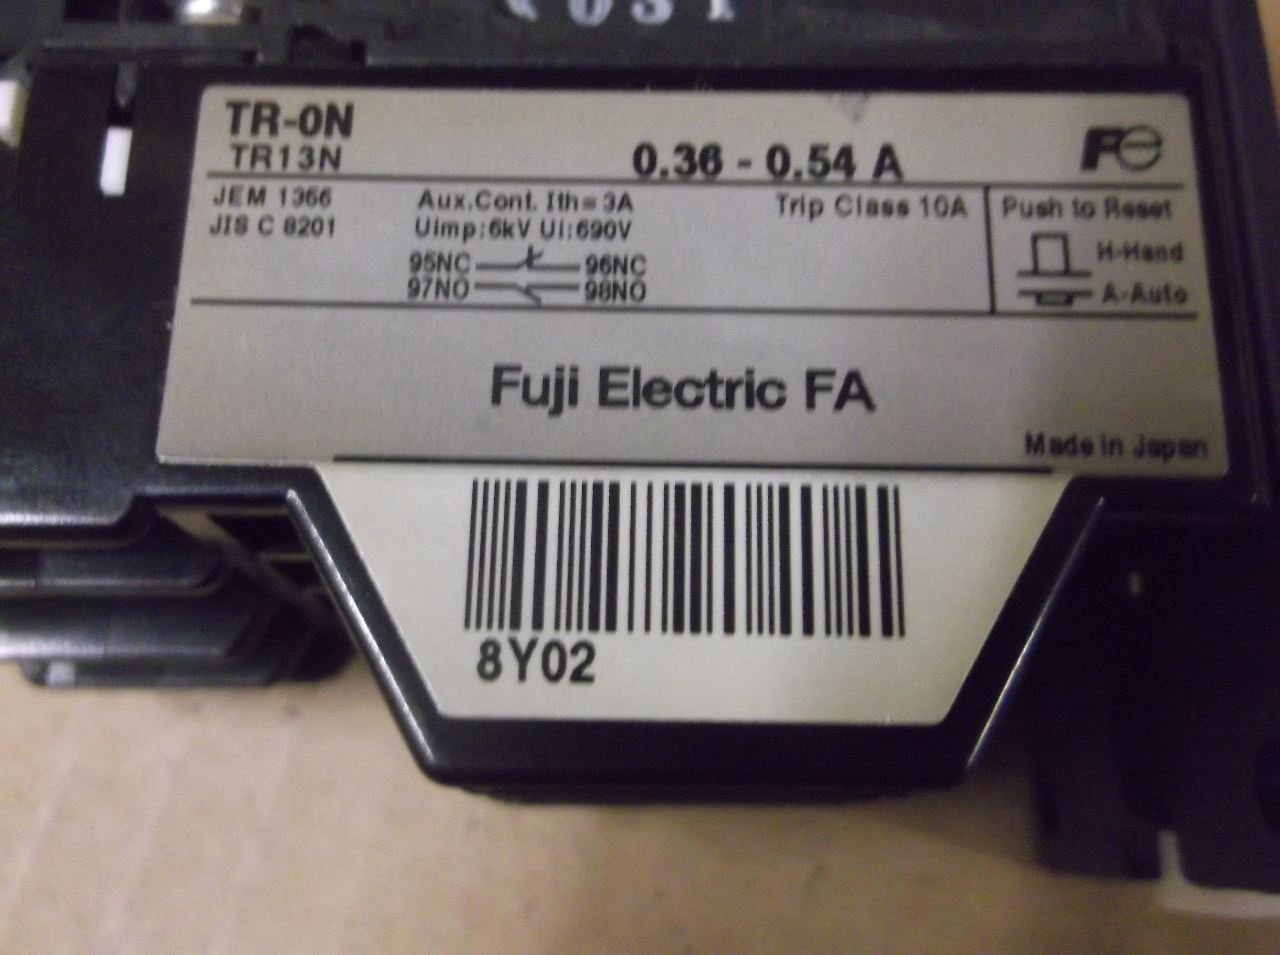 FUJI Thermal Overload Relay TRON TRN  Amp EBay - Working principle of overload relay